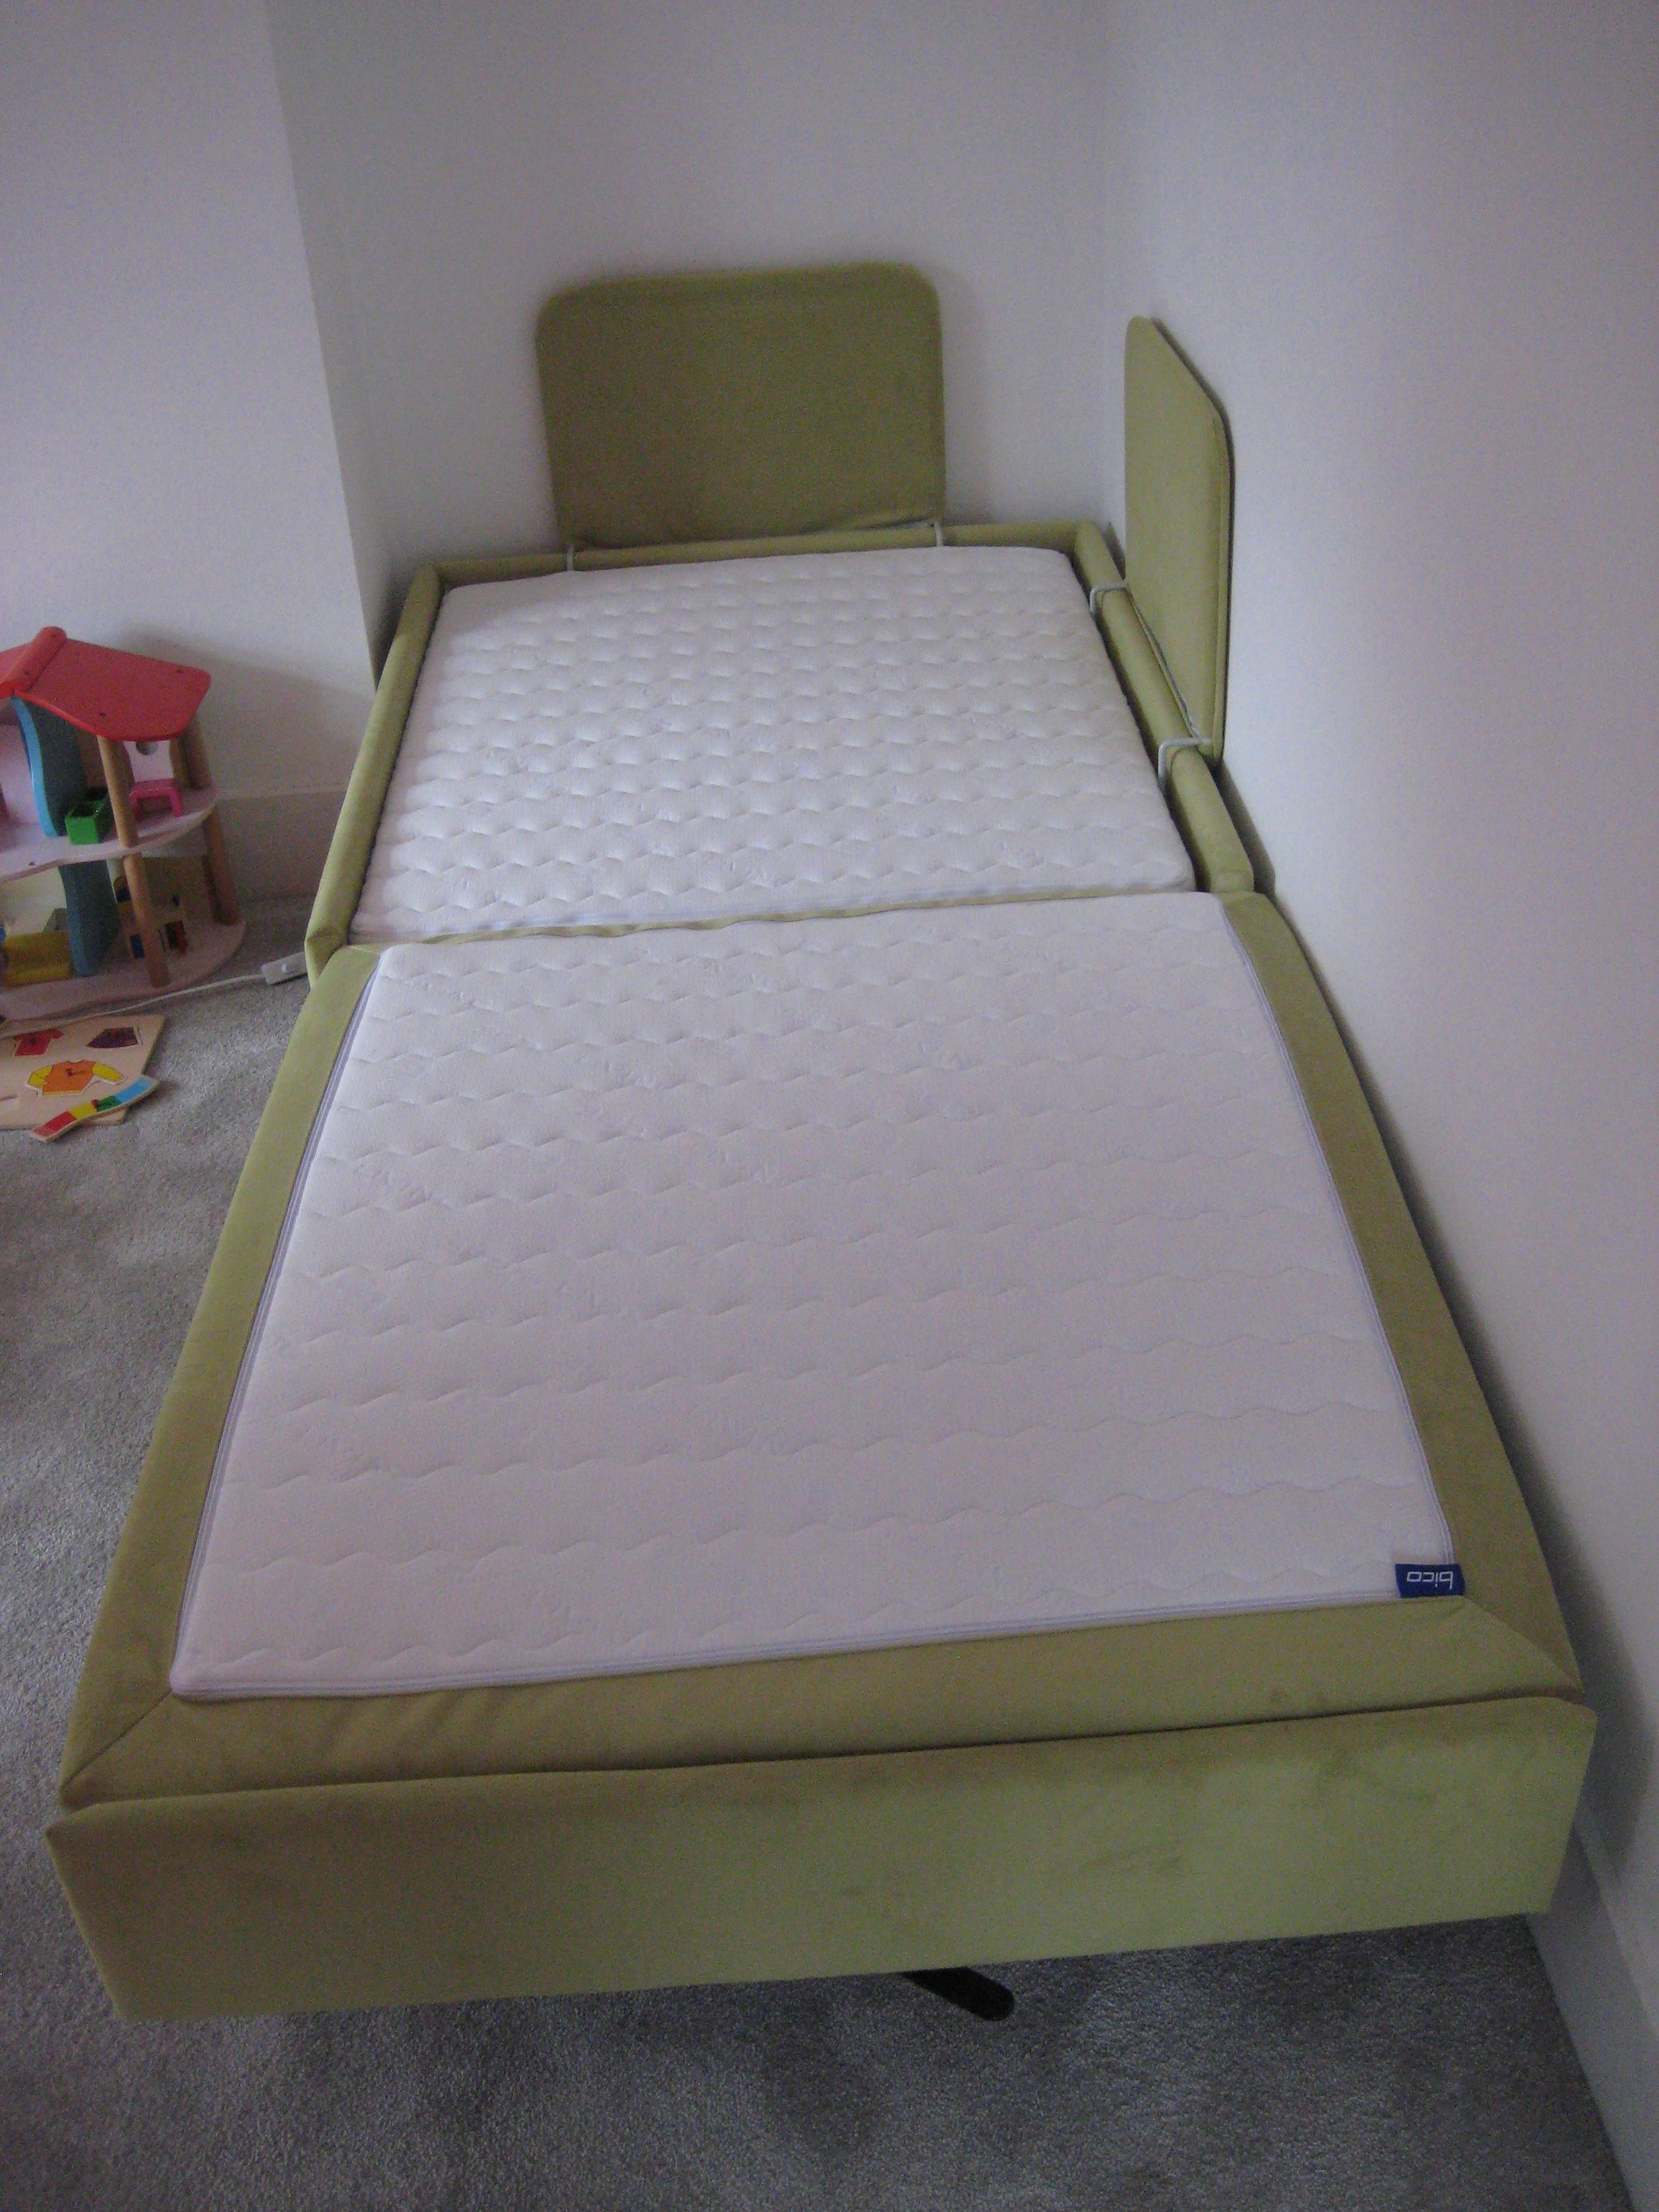 Long Single Bed The Single Bed Fully Opened Is 95 Cm Wide X 210 Cm Long 4 5